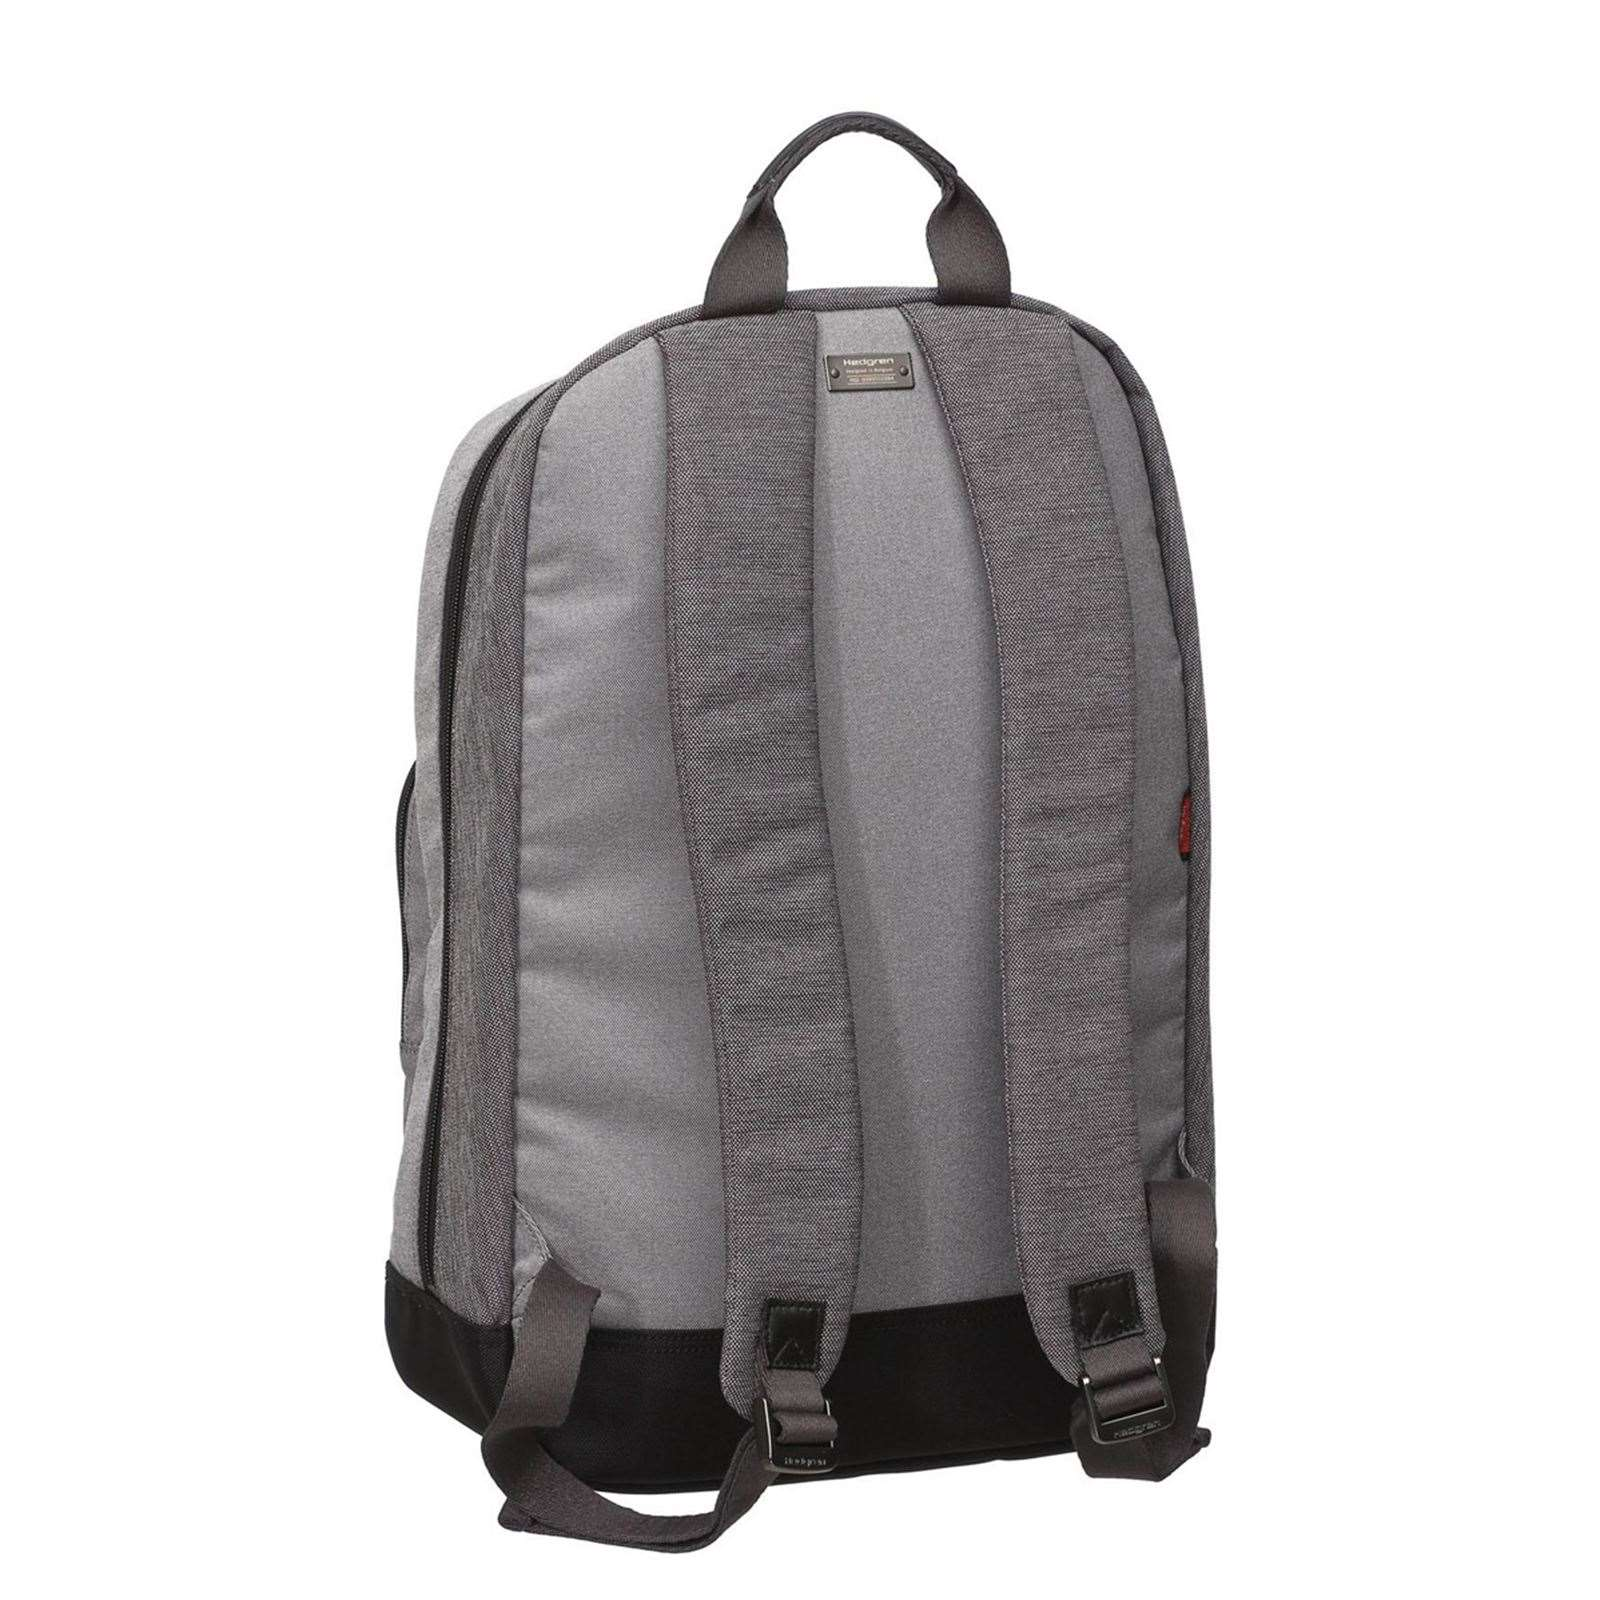 Cuir À Hedgren Dos Finition Clair Walker 15'6'' Sac Gris qOqYxz7Tw